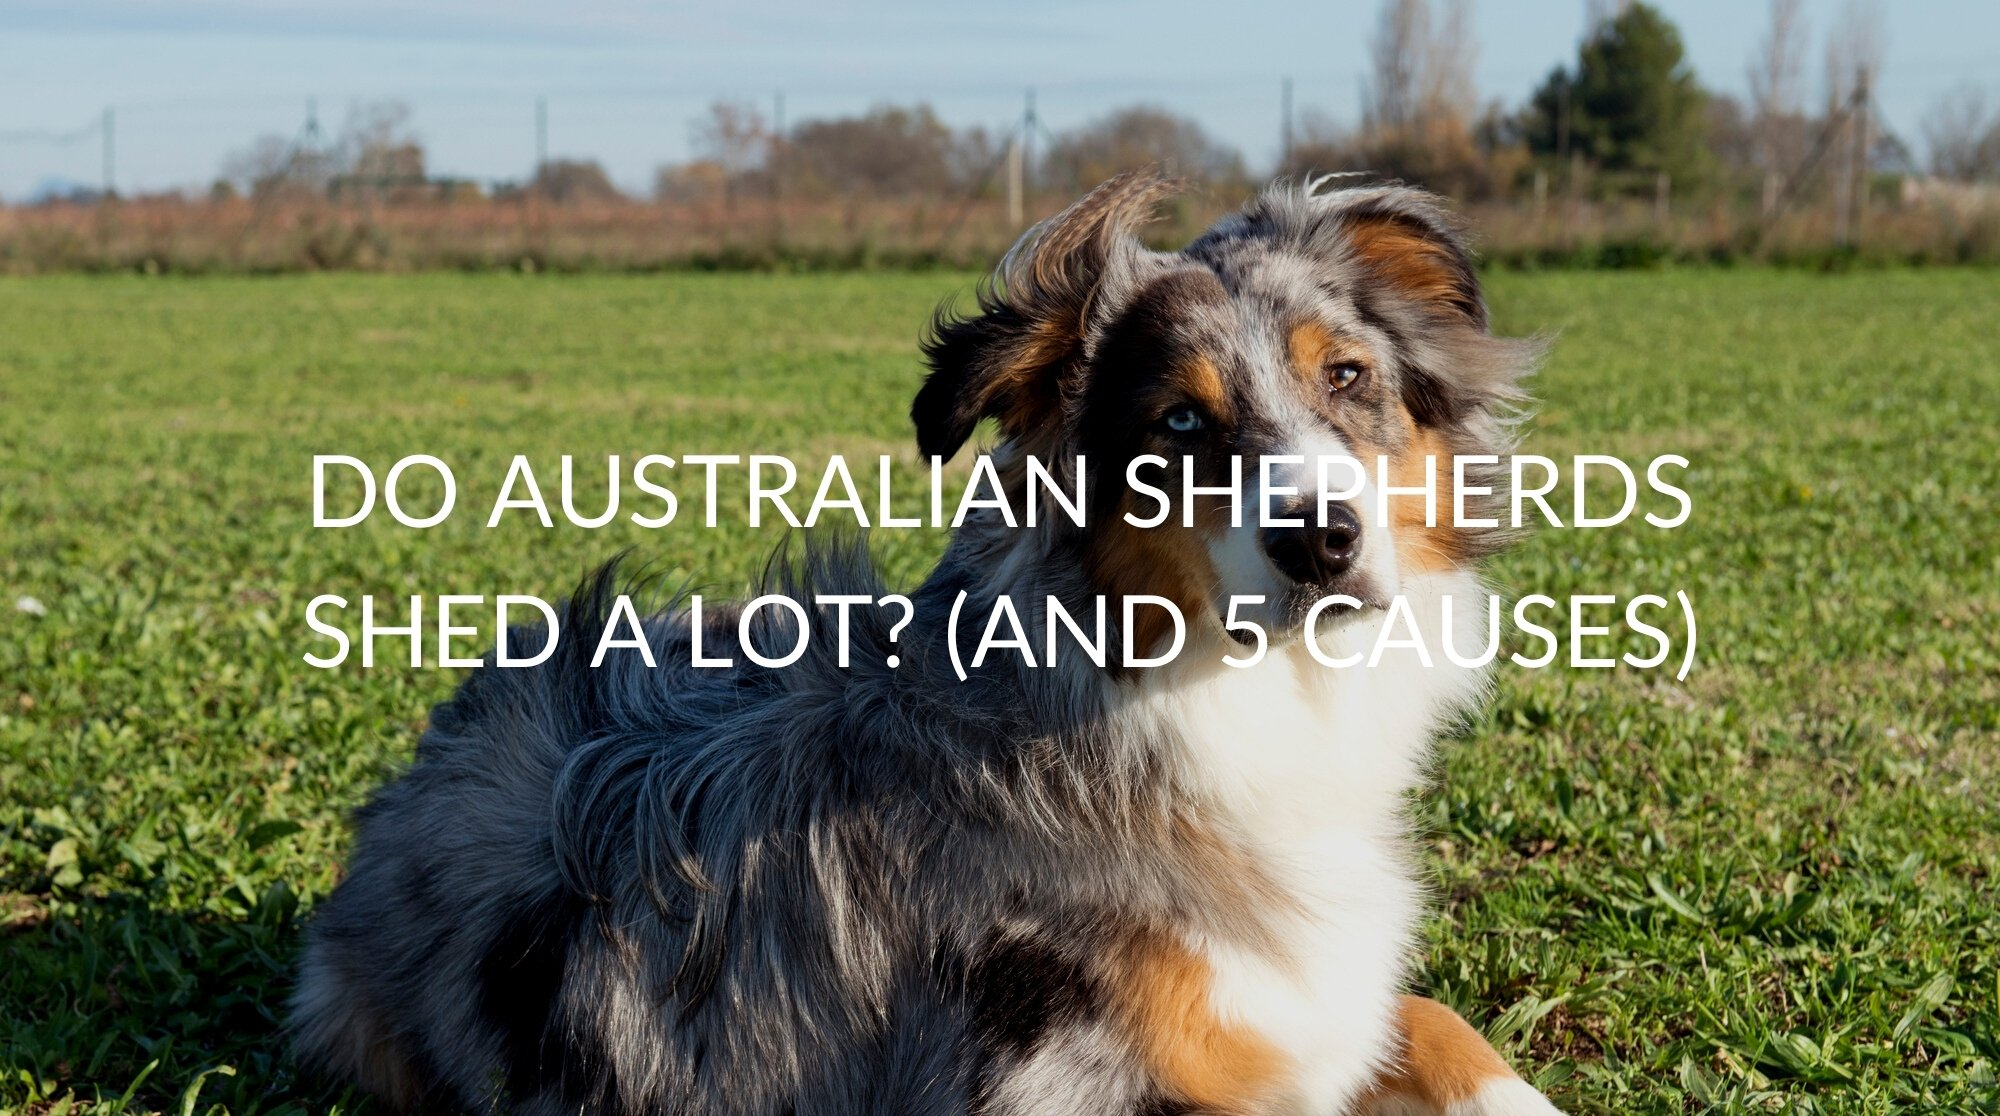 Do Australian Shepherds Shed A Lot? (And 5 Causes)